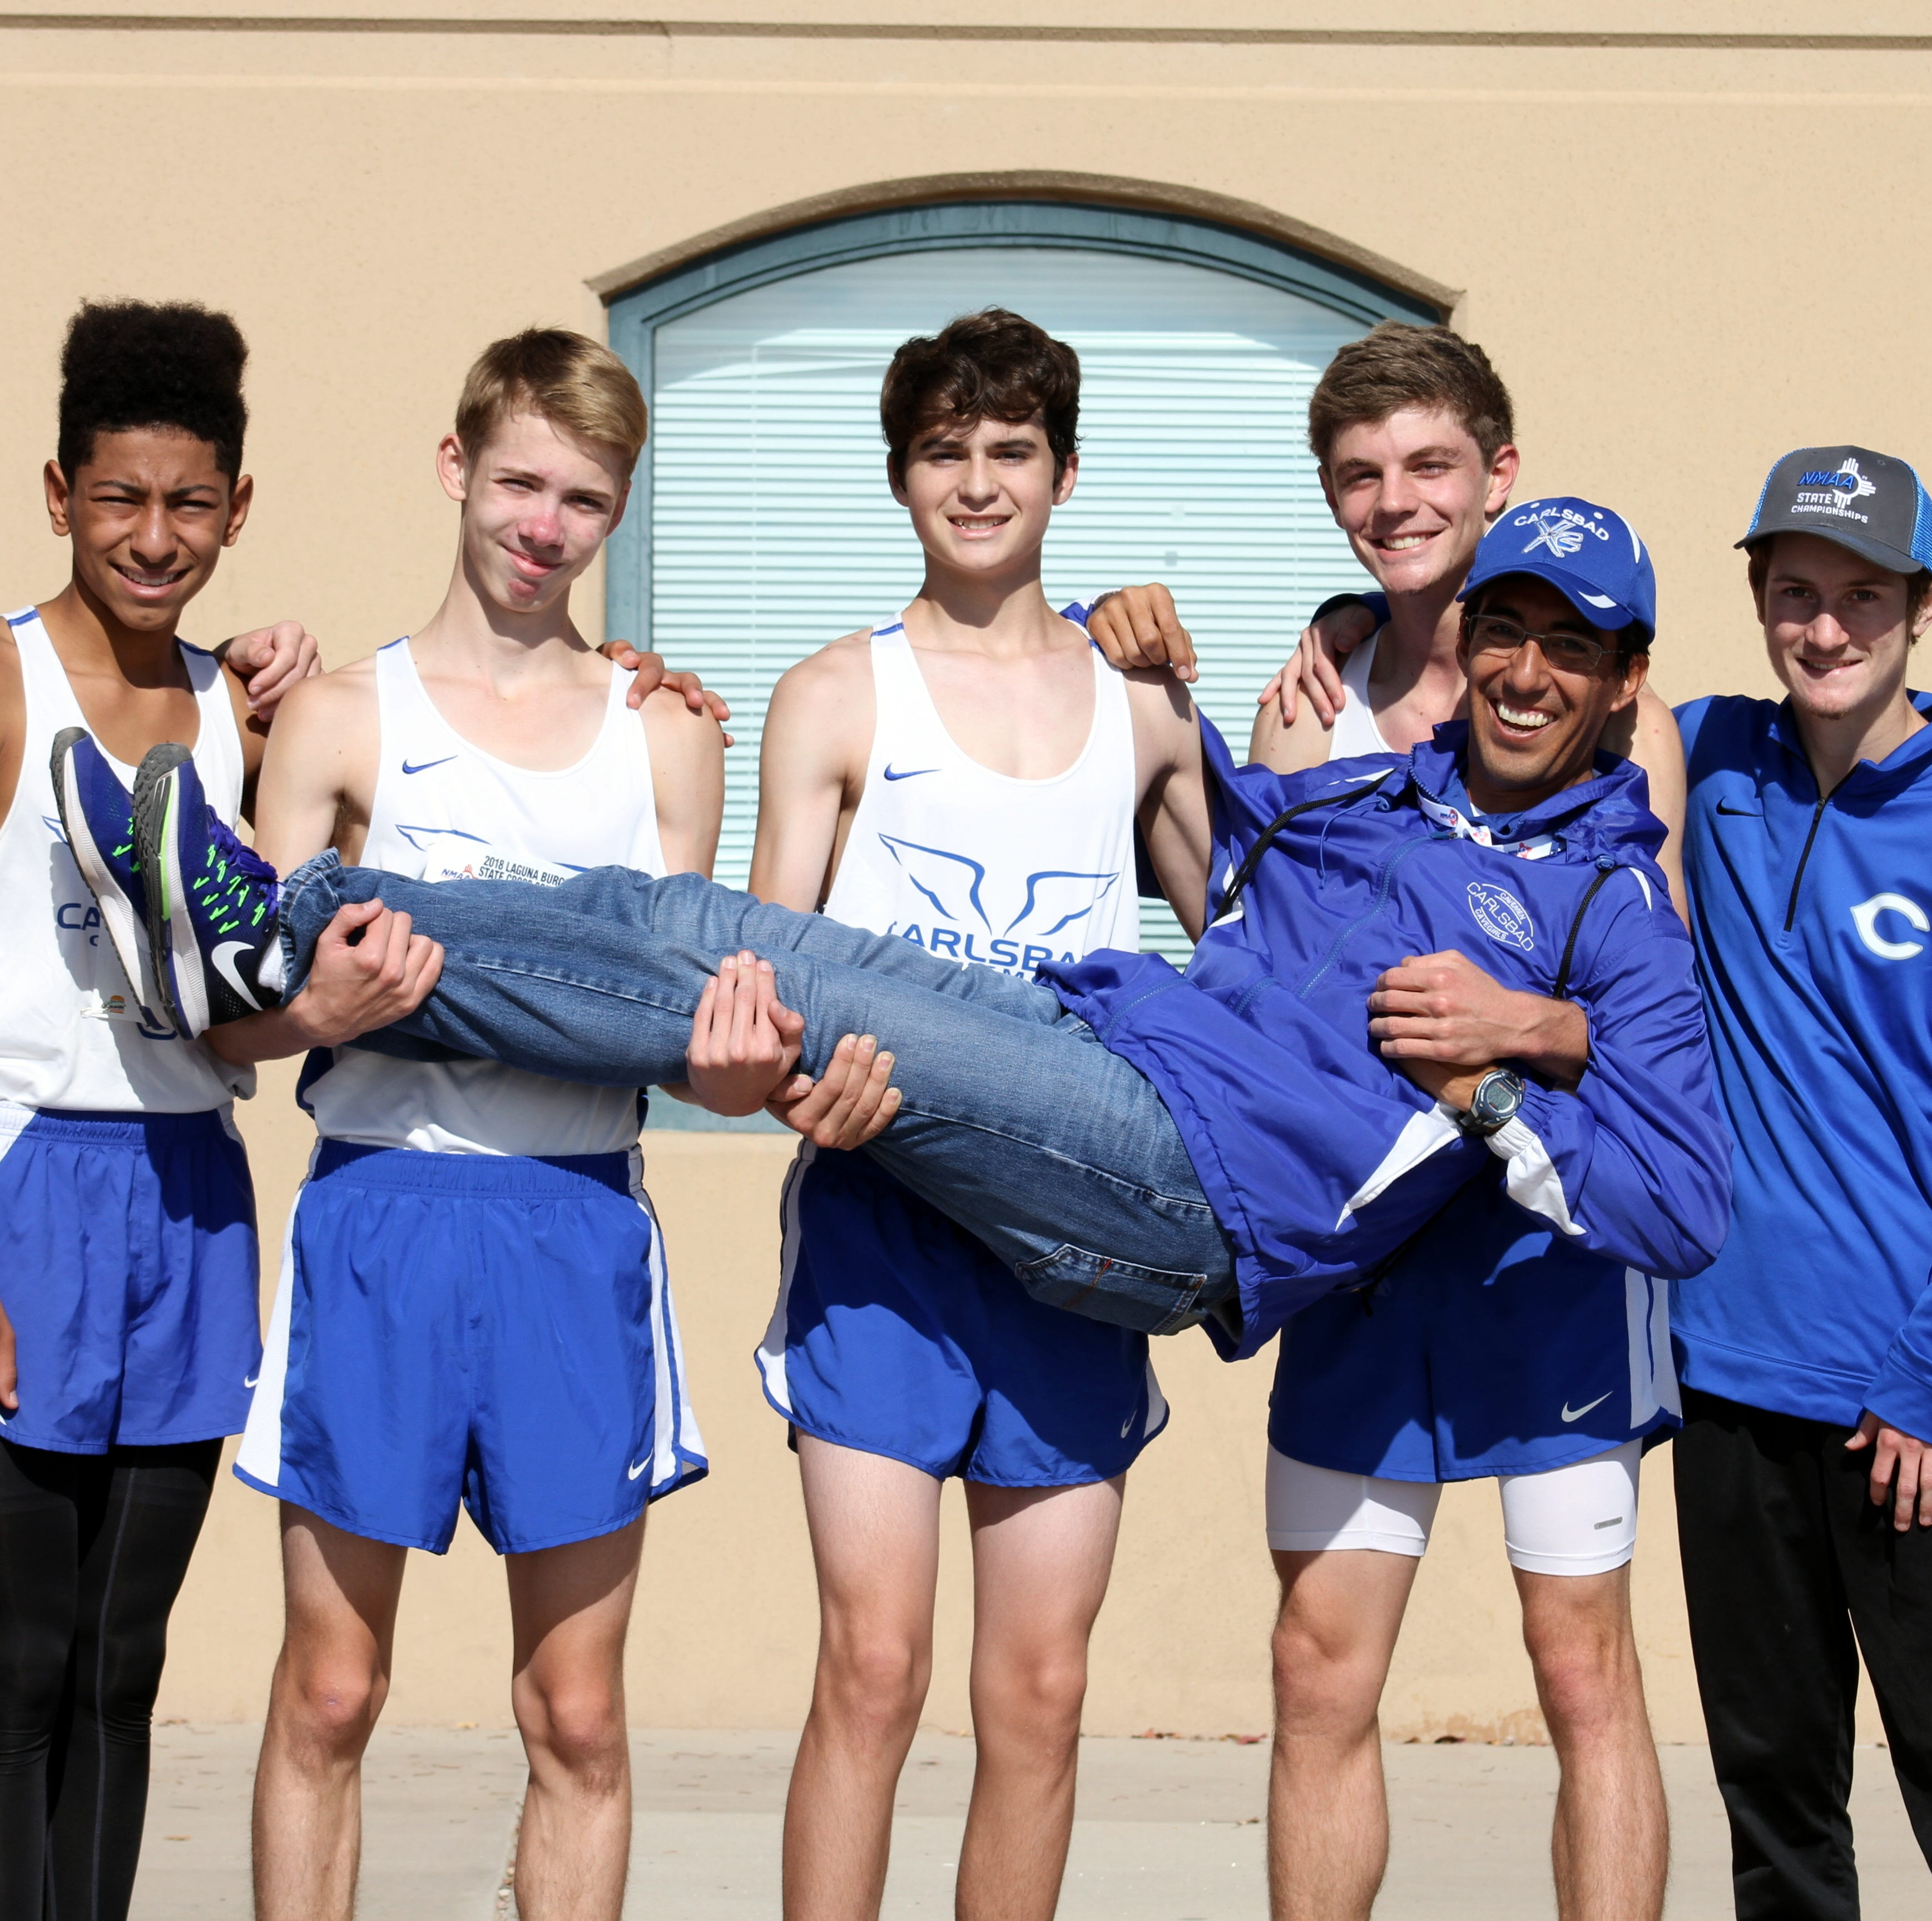 Carlsbad Cavemen finish 13th at state cross country race, build toward future